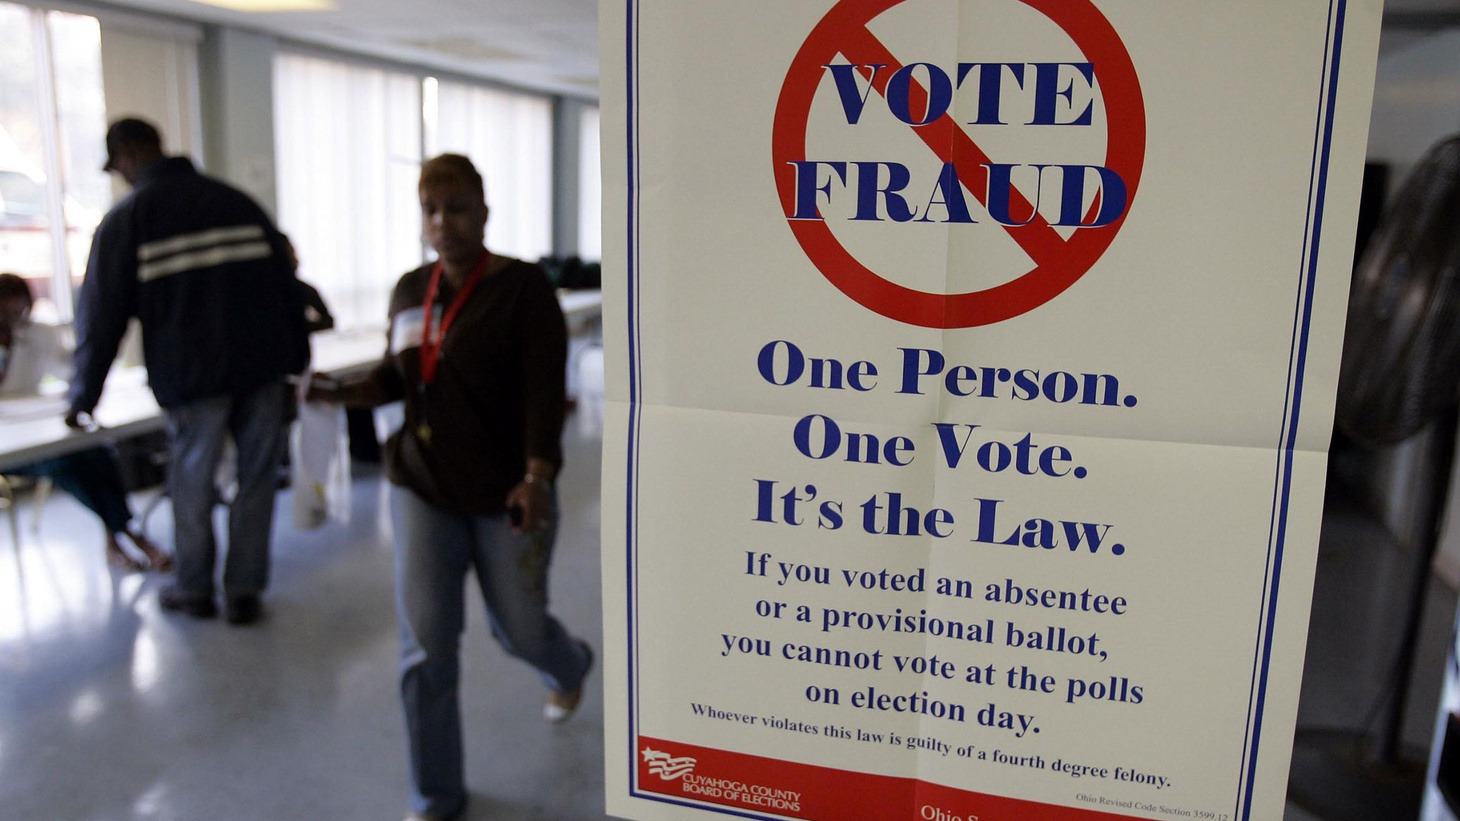 Across the US, Republicans in state capitols are passing laws to limit what they call rampant voter fraud. Democrats say the GOP's declared war on voters who want to re-elect Barack Obama.